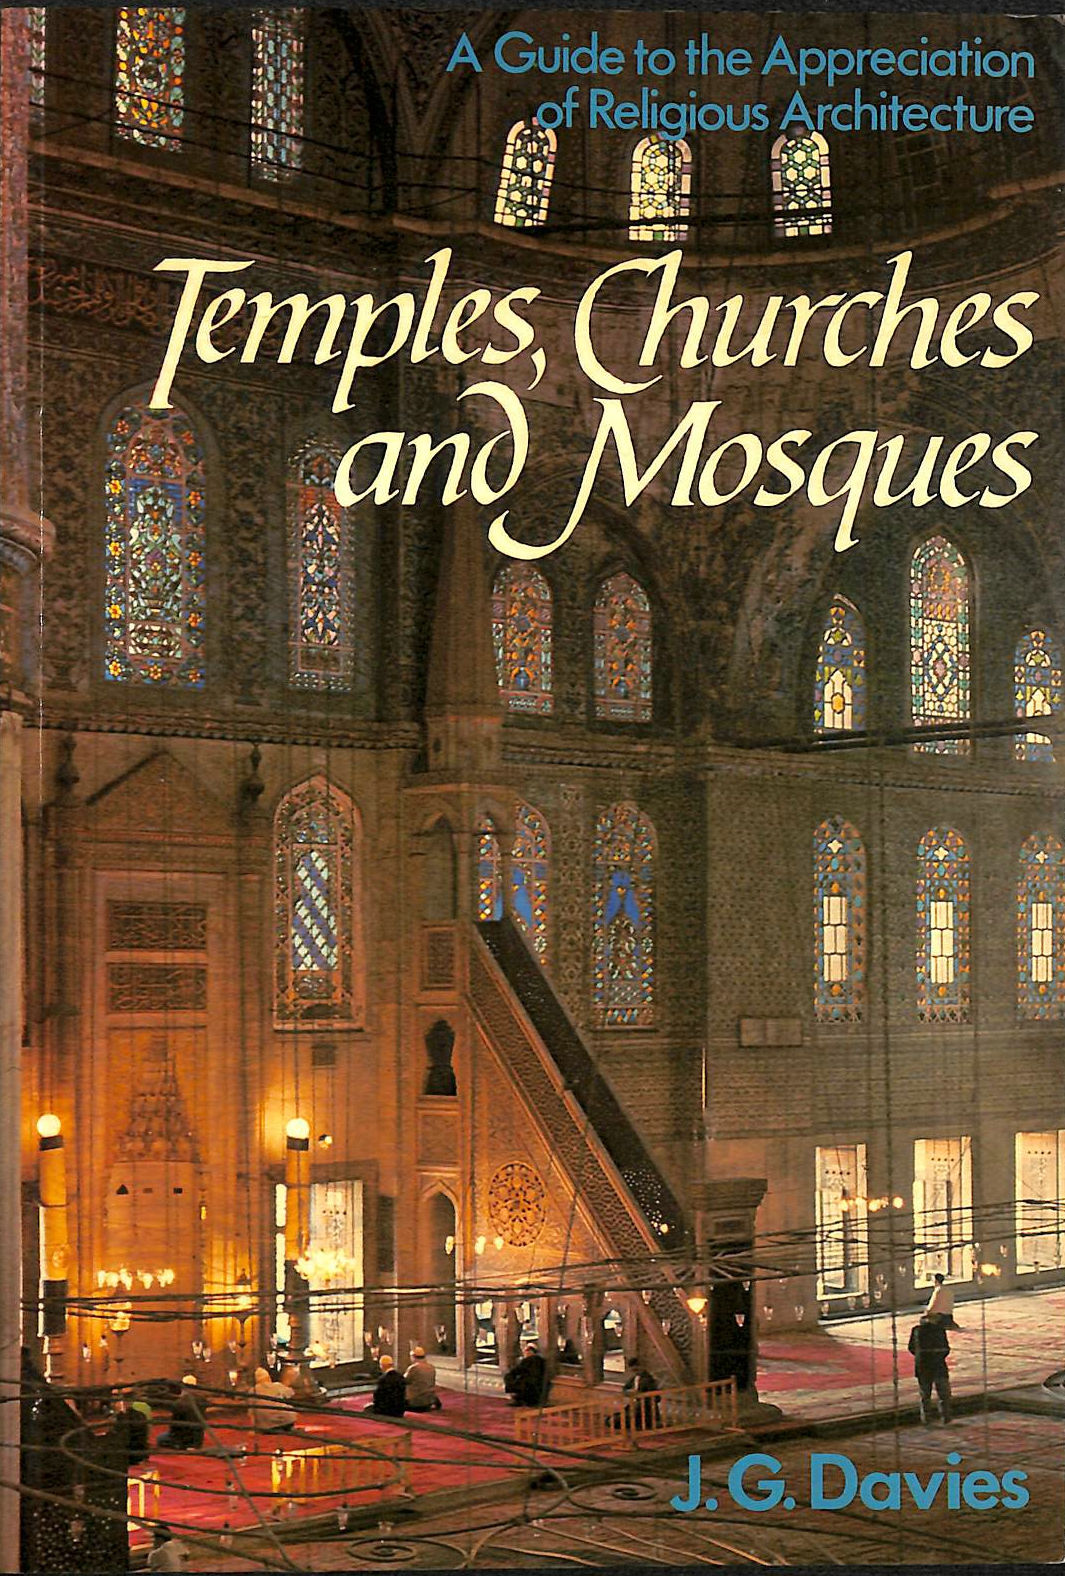 J. G. DAVIES - Temples, Churches and Mosques